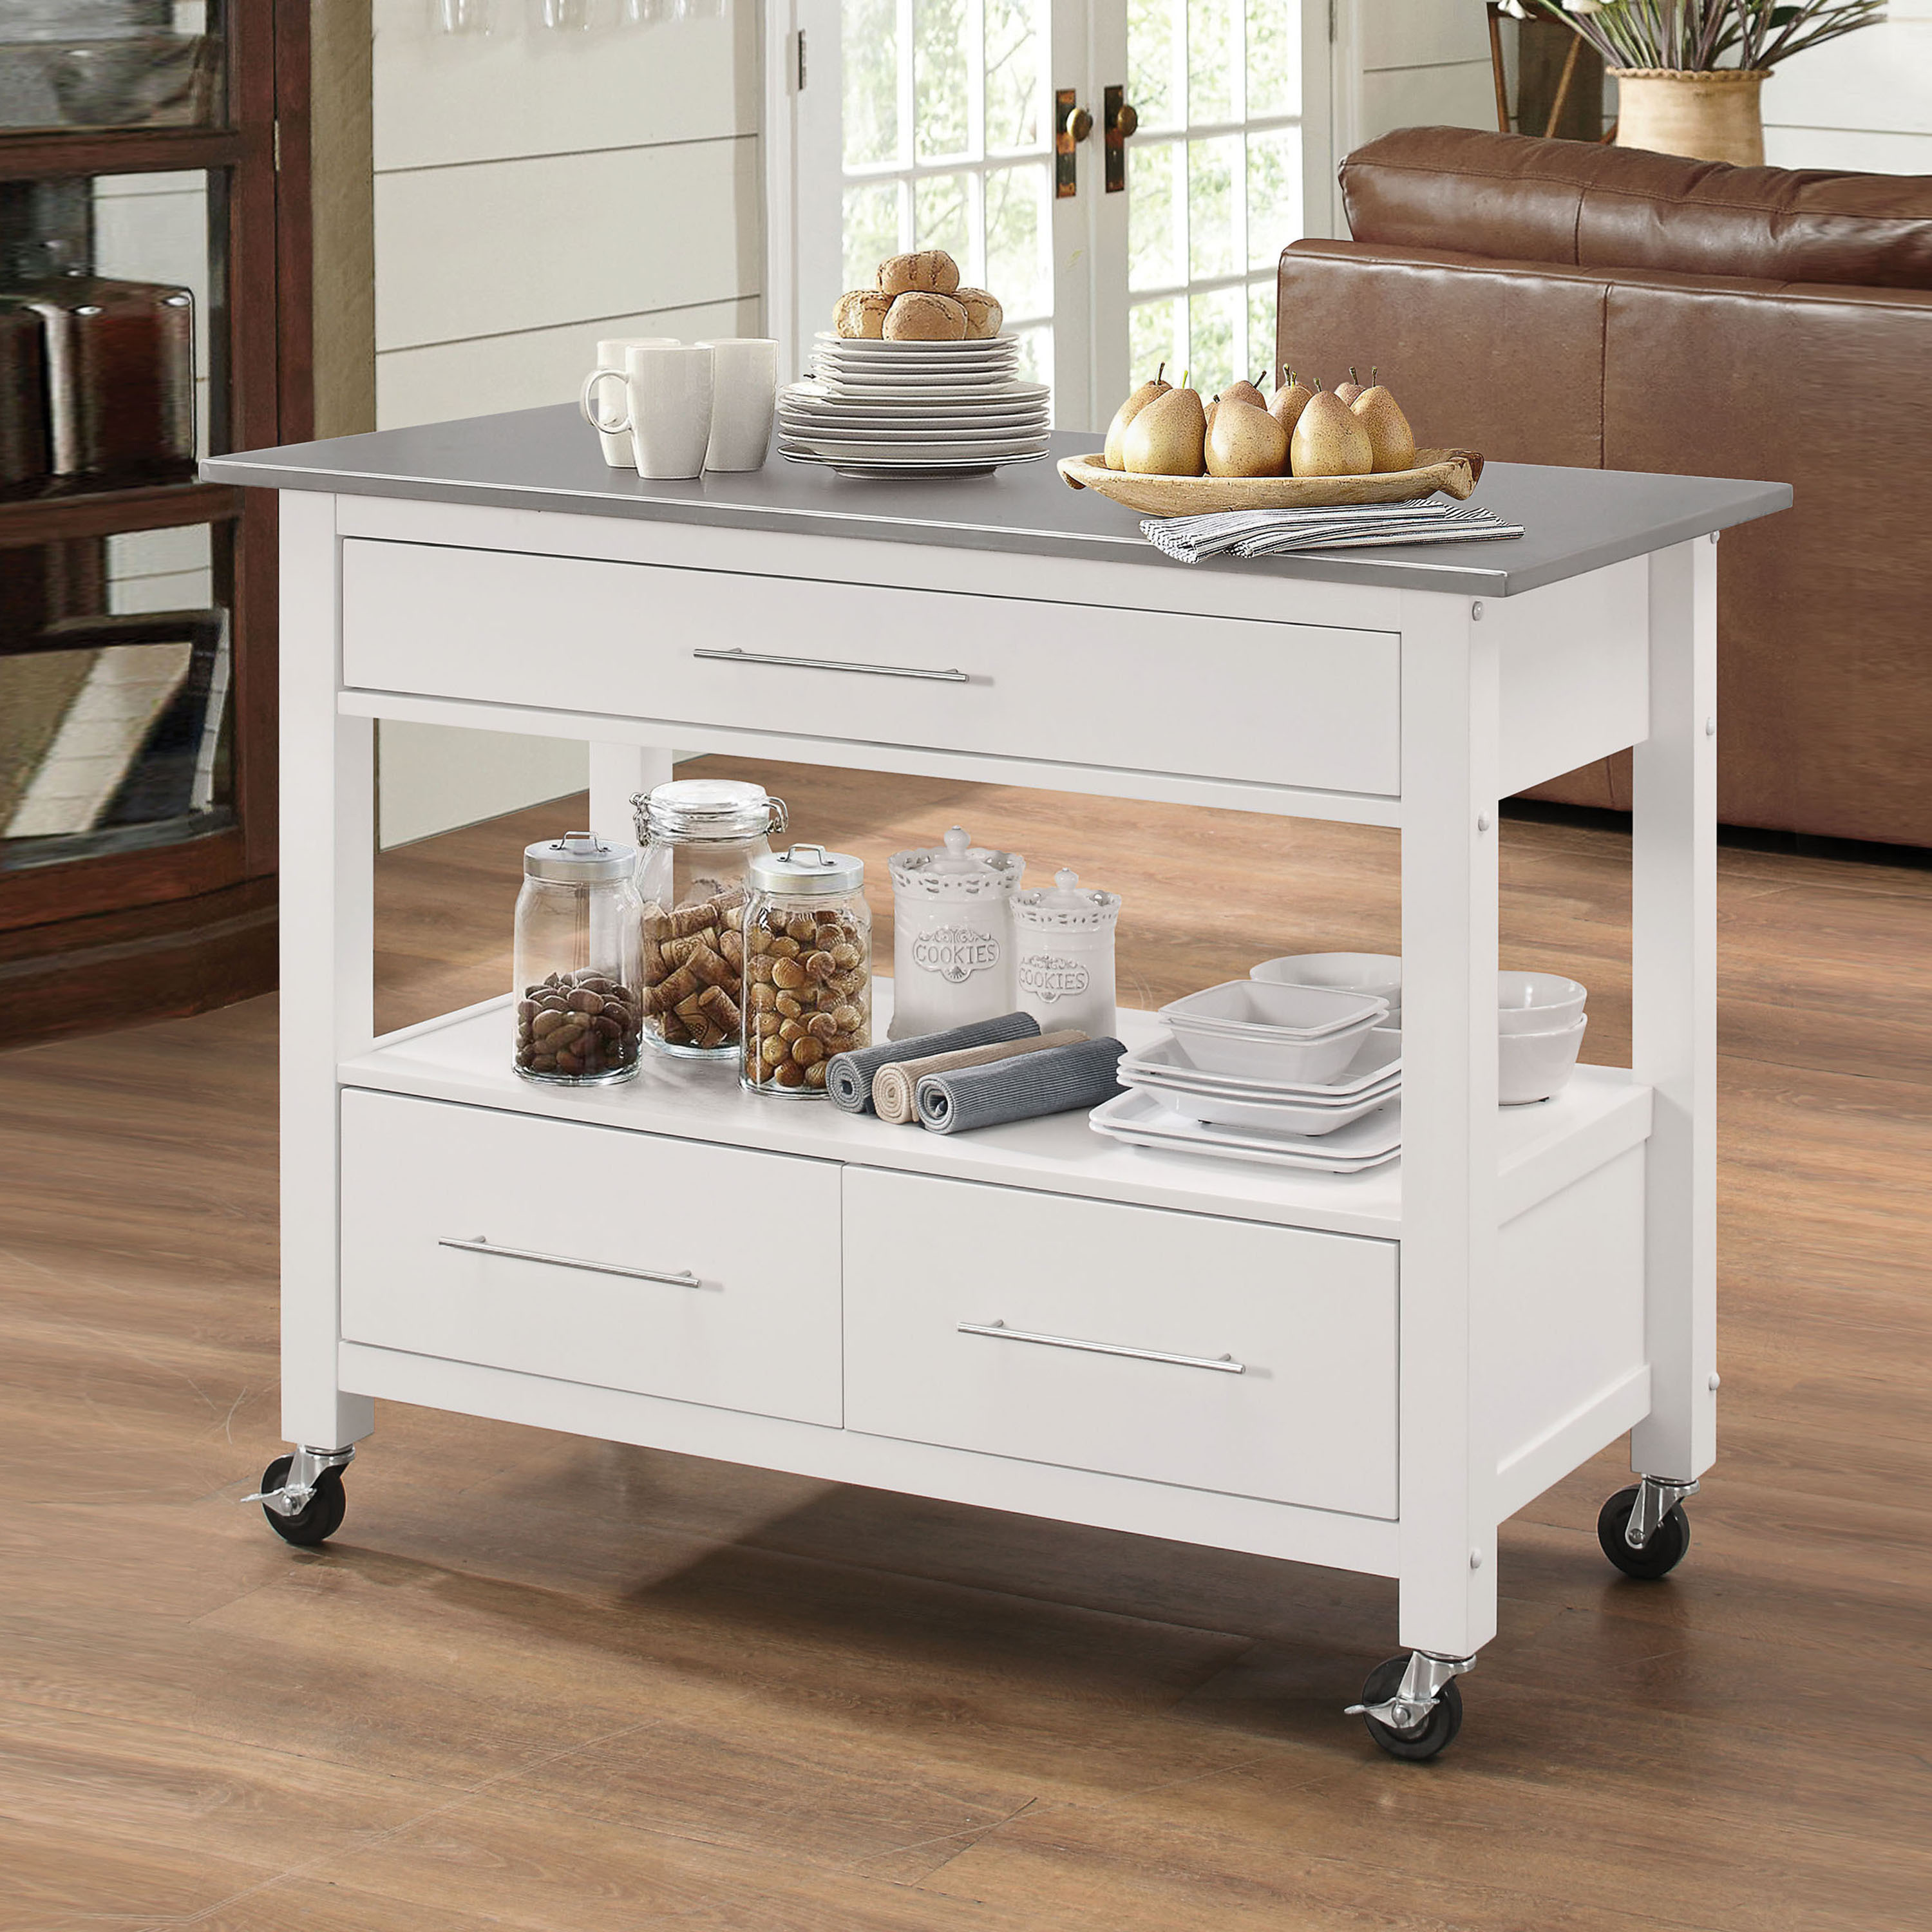 Havenside Home Saybrook Stainless Steel/White Kitchen Cart - Free ...